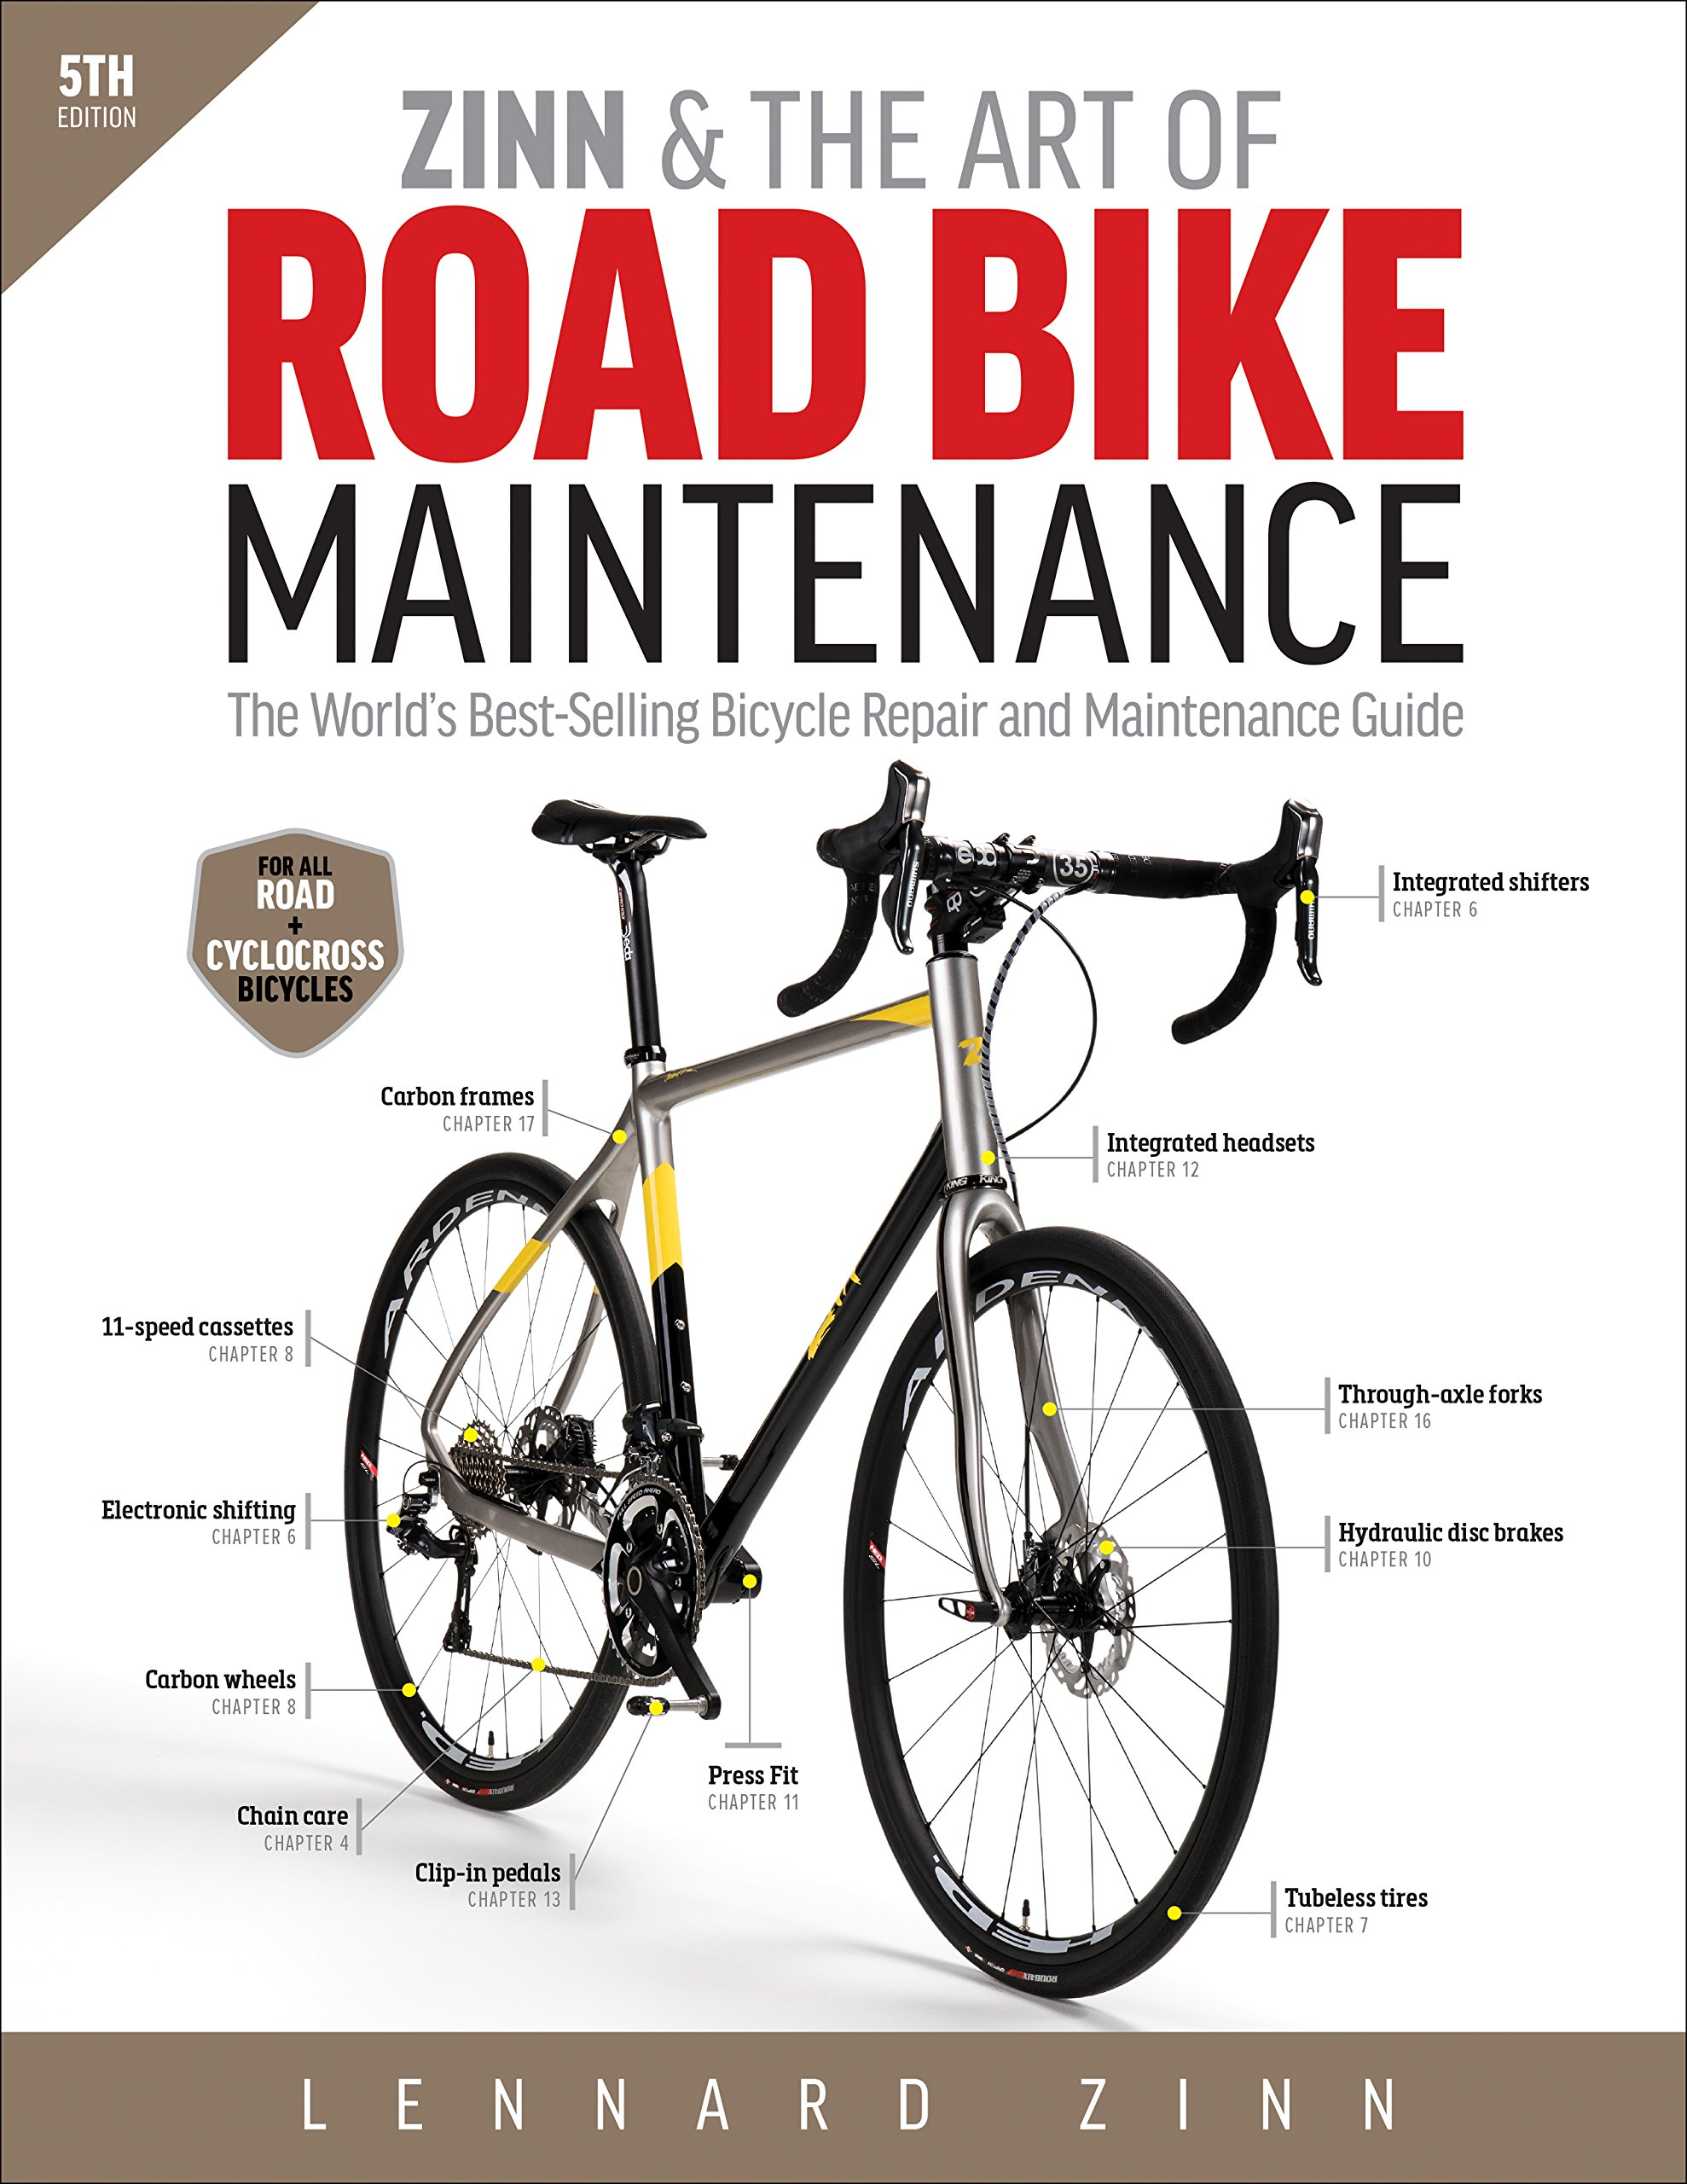 Zinn & the Art of Road Bike Maintenance: The World's Best-Selling Bicycle Repair and Maintenance Guide Paperback – January 1, 2016 Lennard Zinn VeloPress 193771537X Cycling